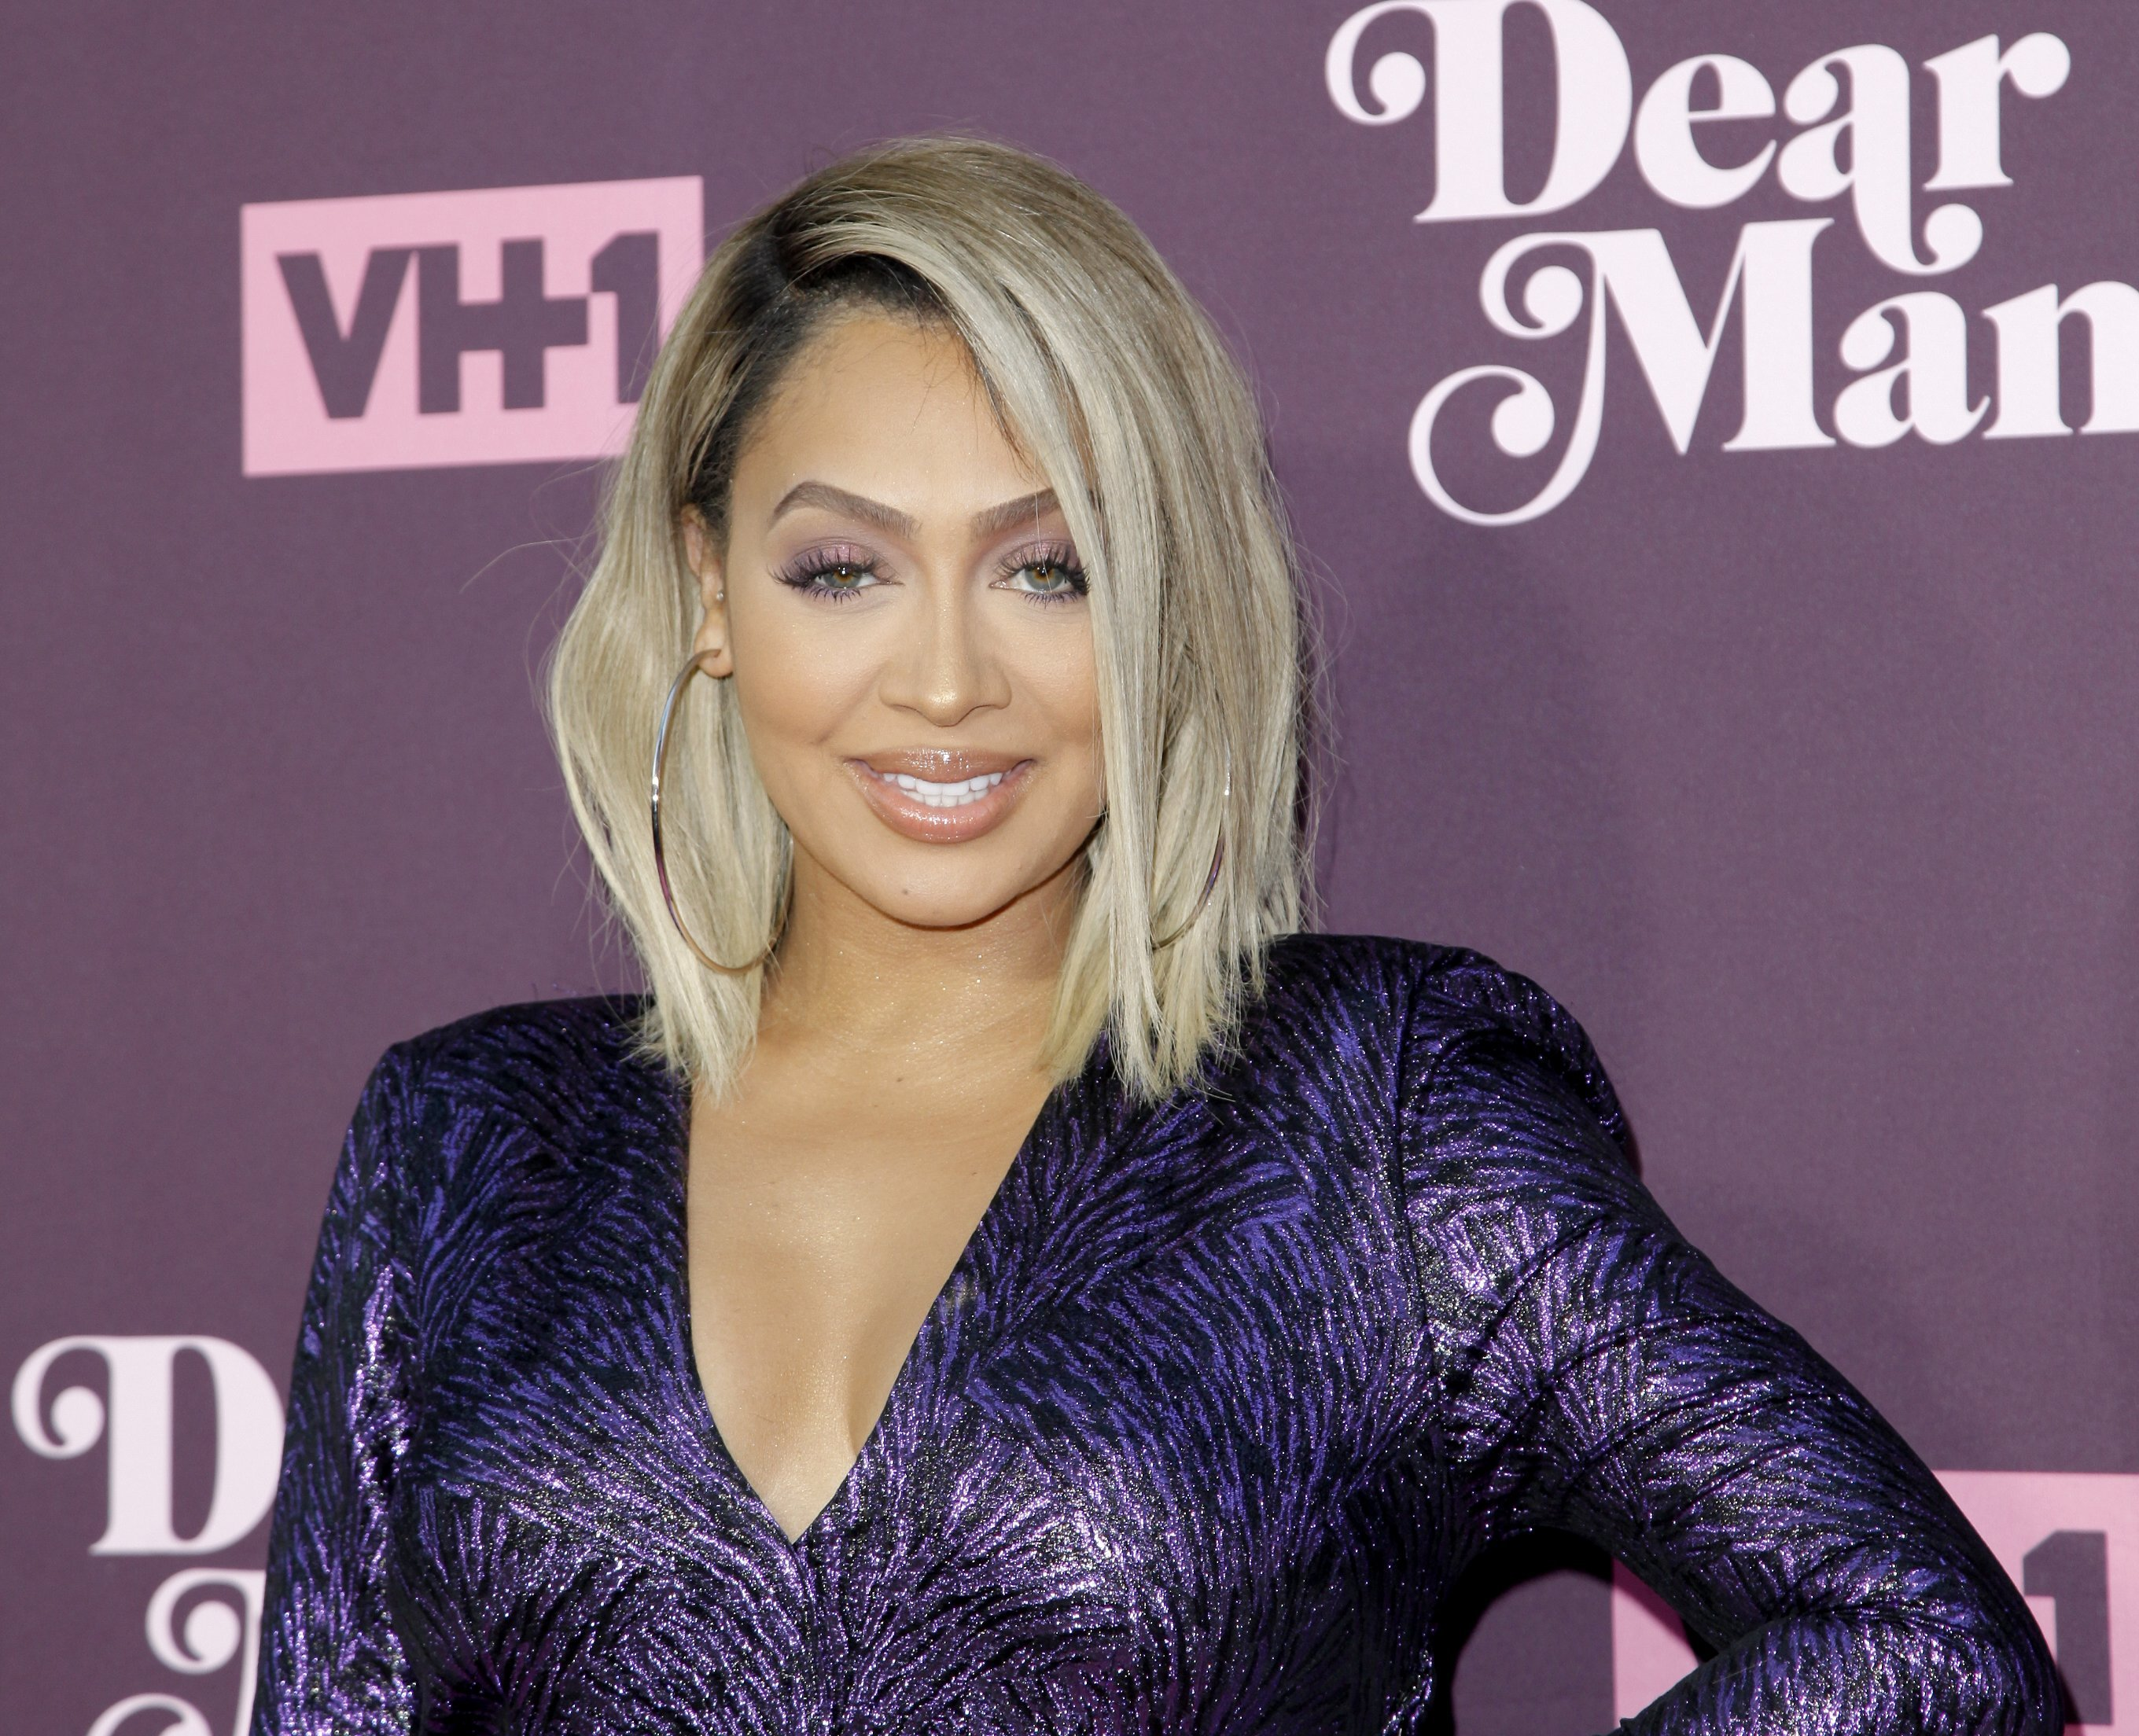 """La La Anthony at the 3rd annual """"Dear Mama: A Love Letter To Moms"""" screening in May 2018. 